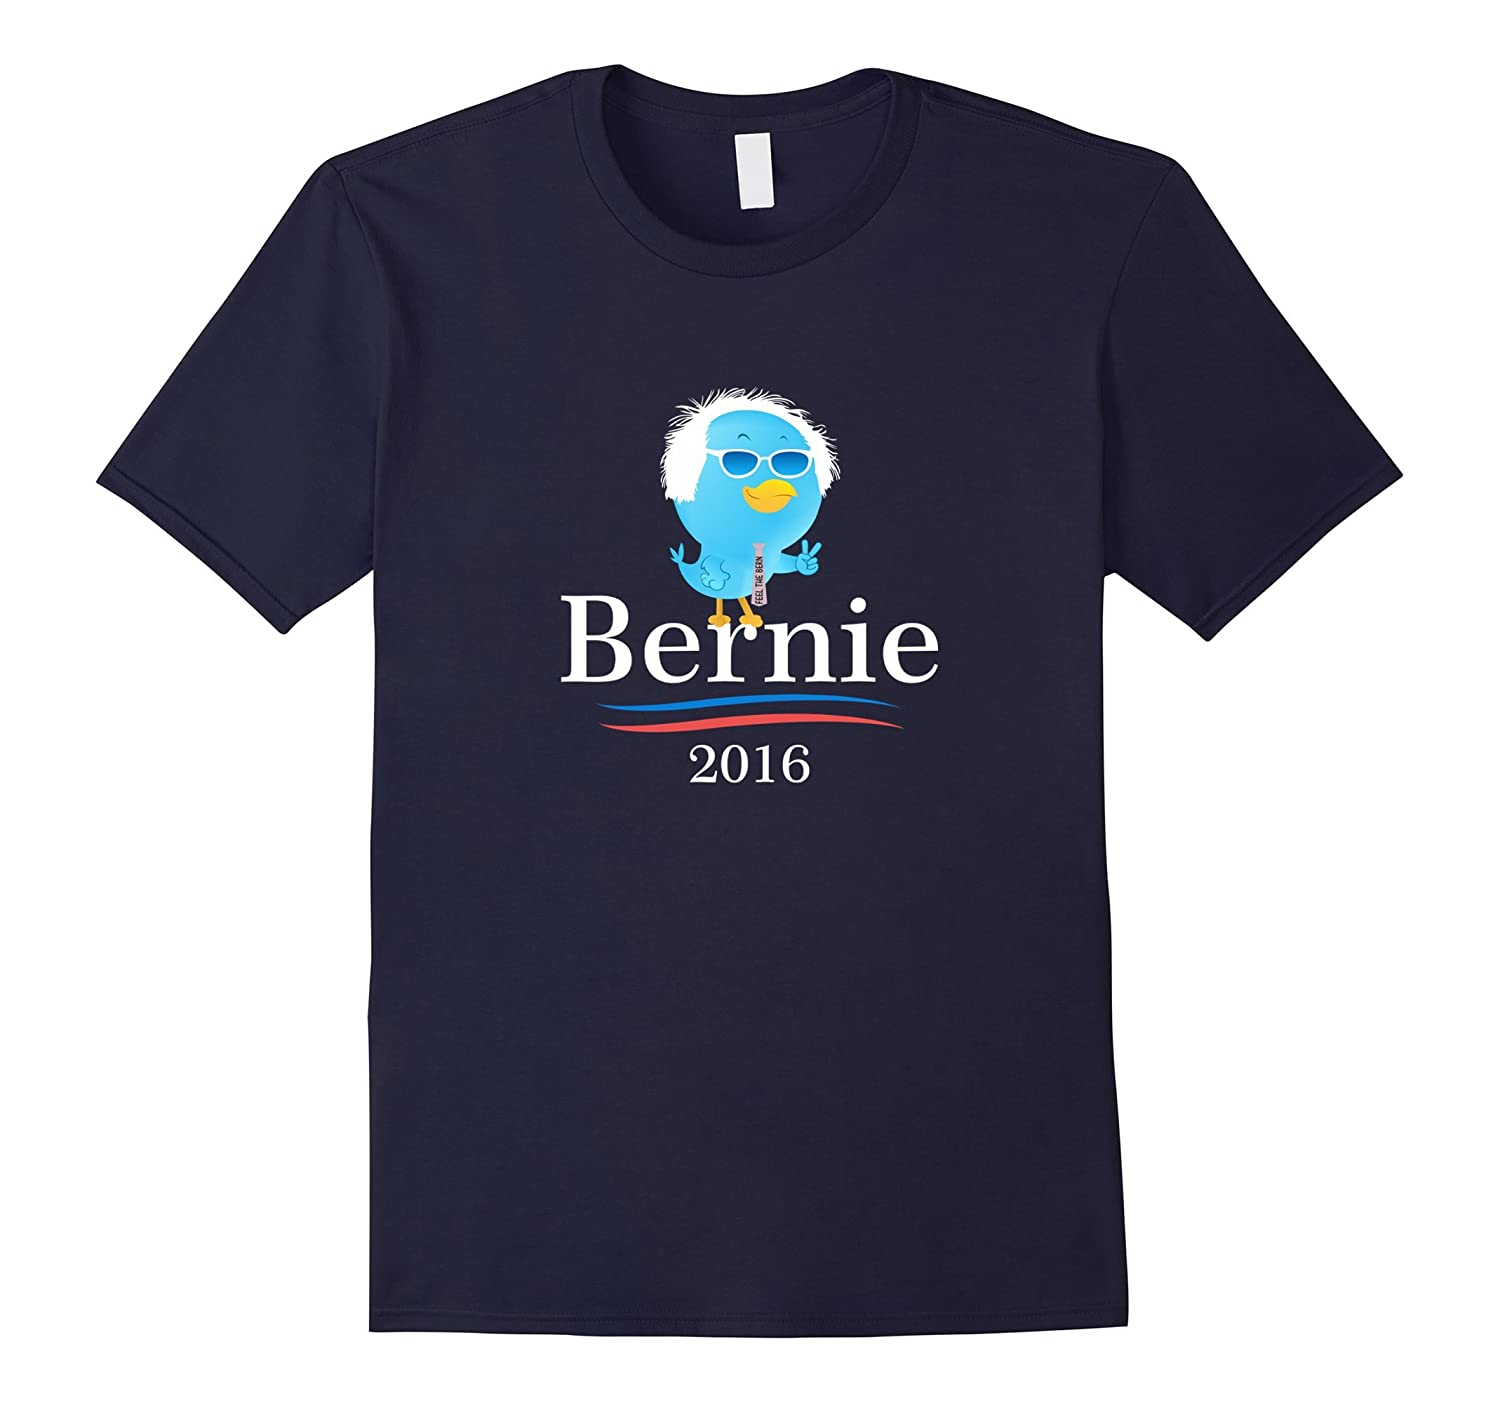 Bernie 2016 Shirt - Birdie Sanders Peace - Men  Women  Kid-RT